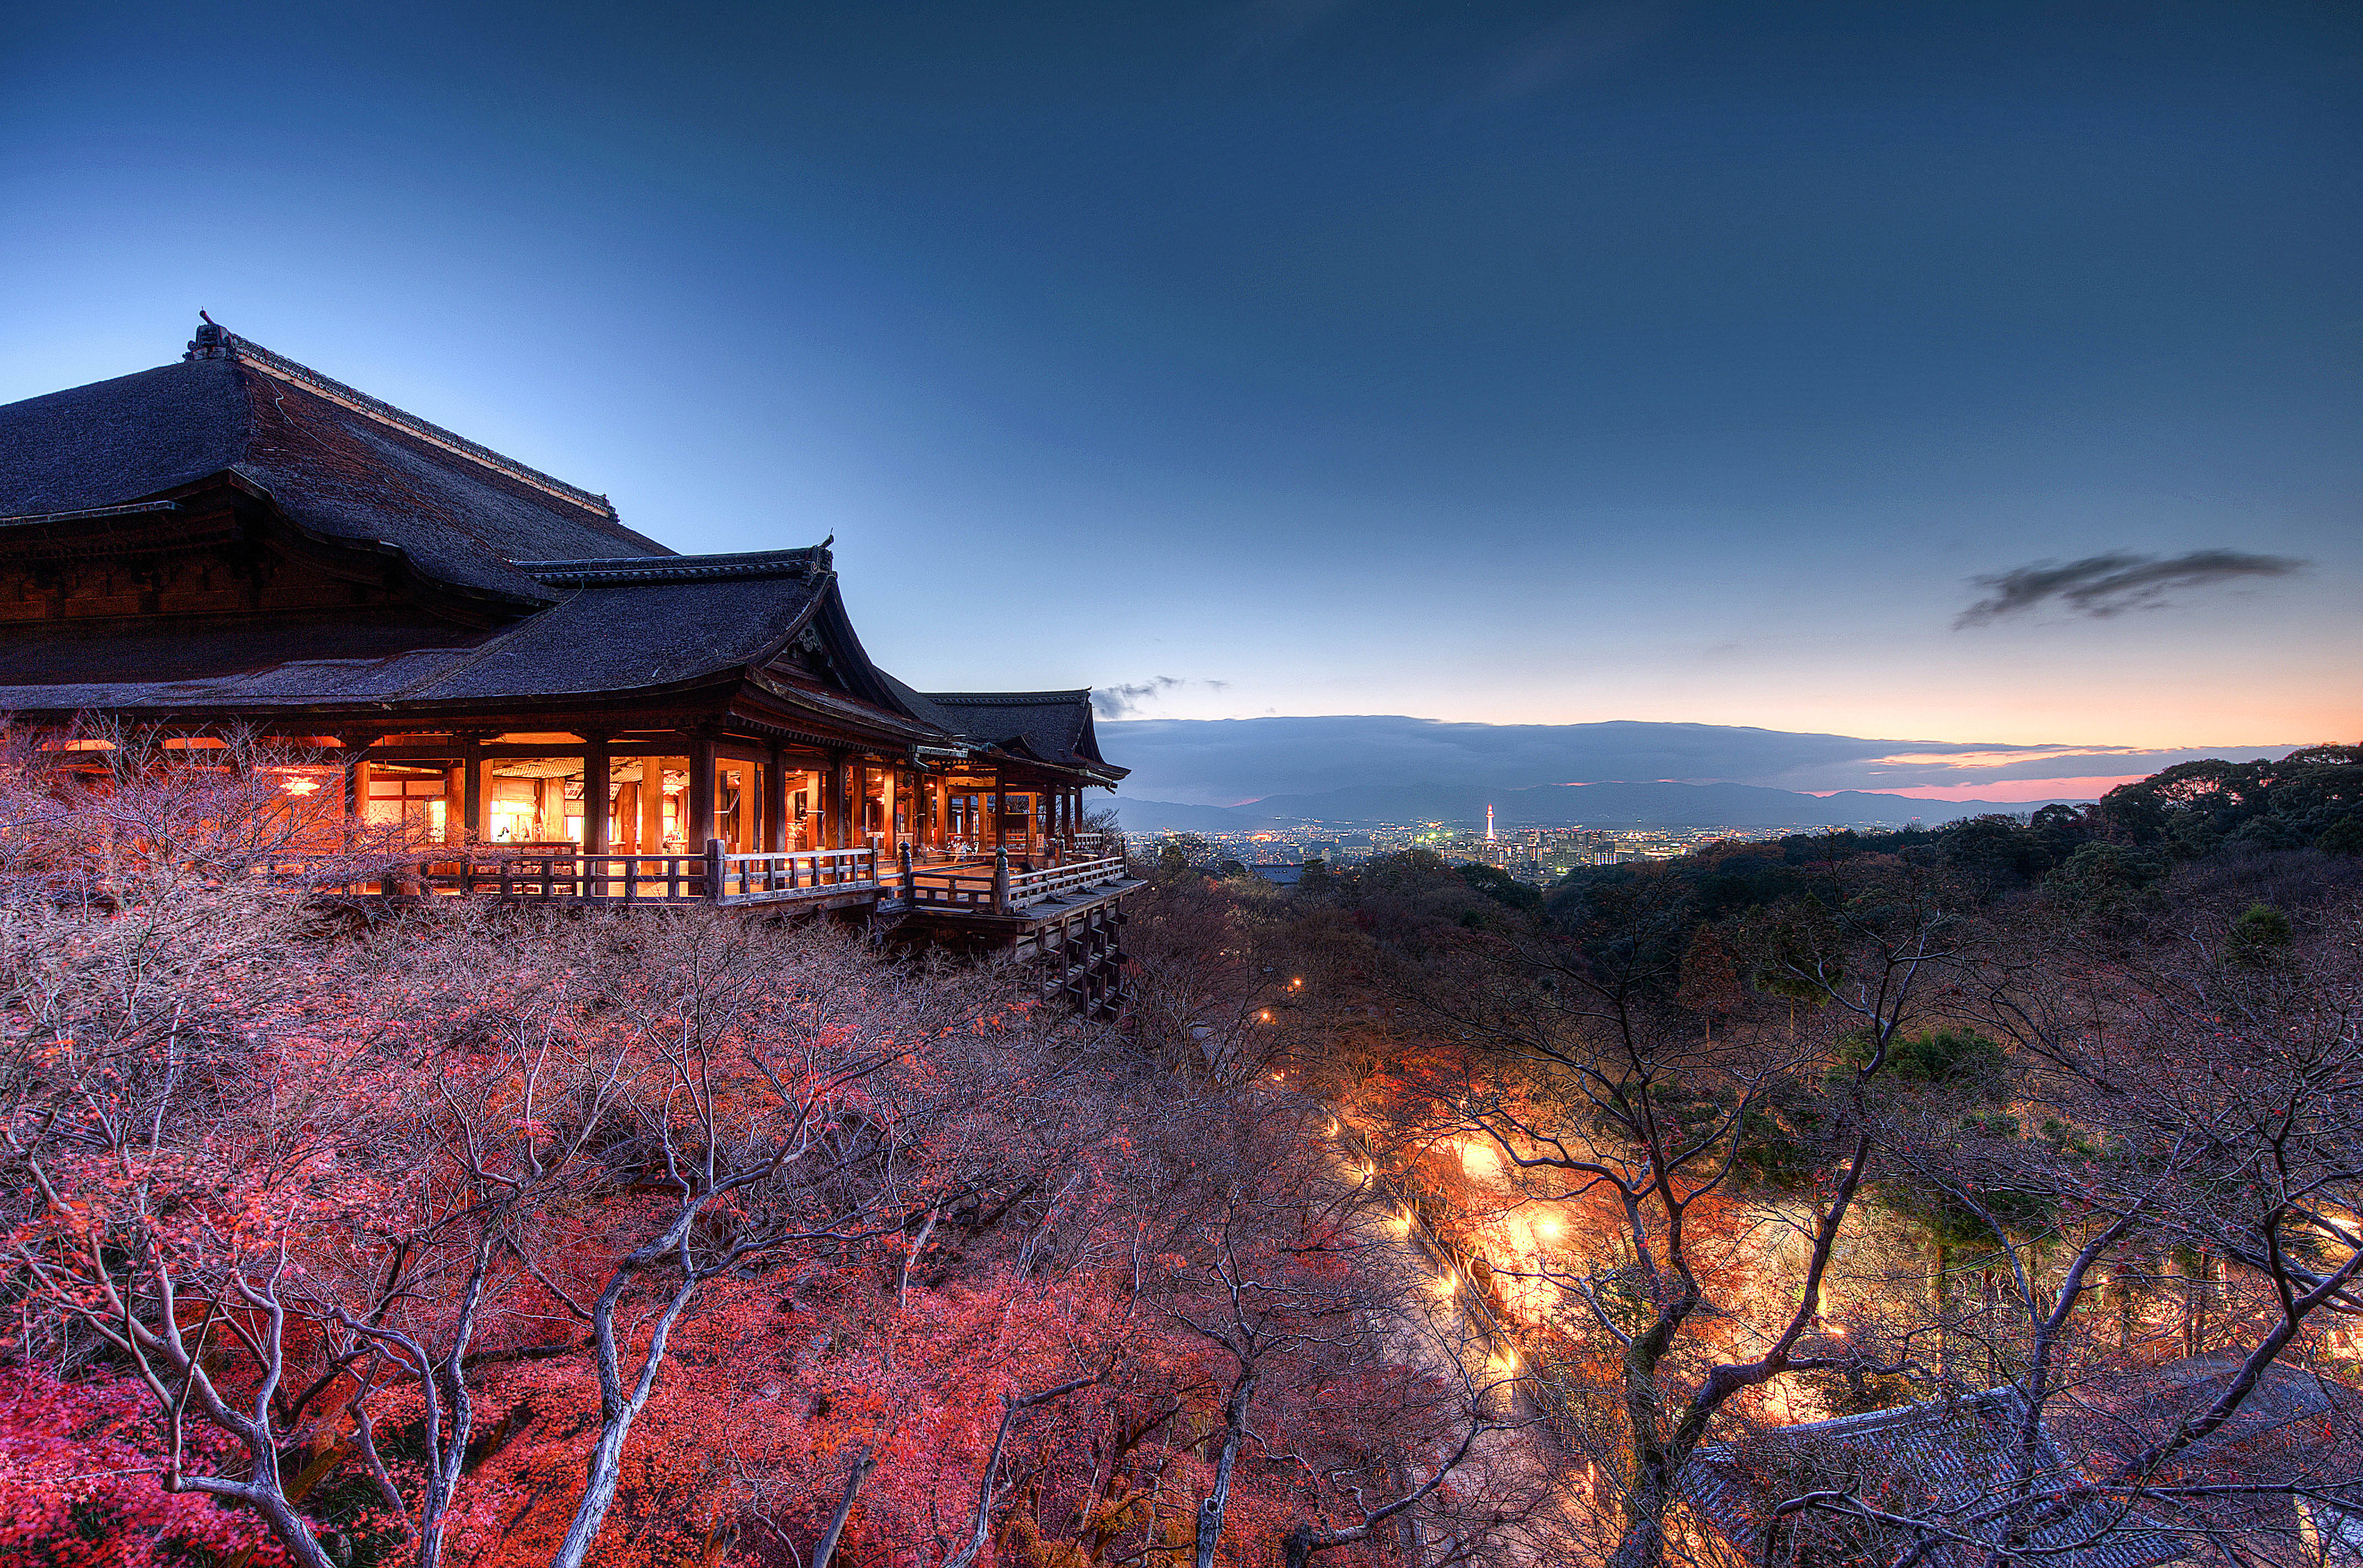 Smart Phone Wallpapers Girls Kiyomizu Dera Beautiful Pictures Images Amp Backgrounds